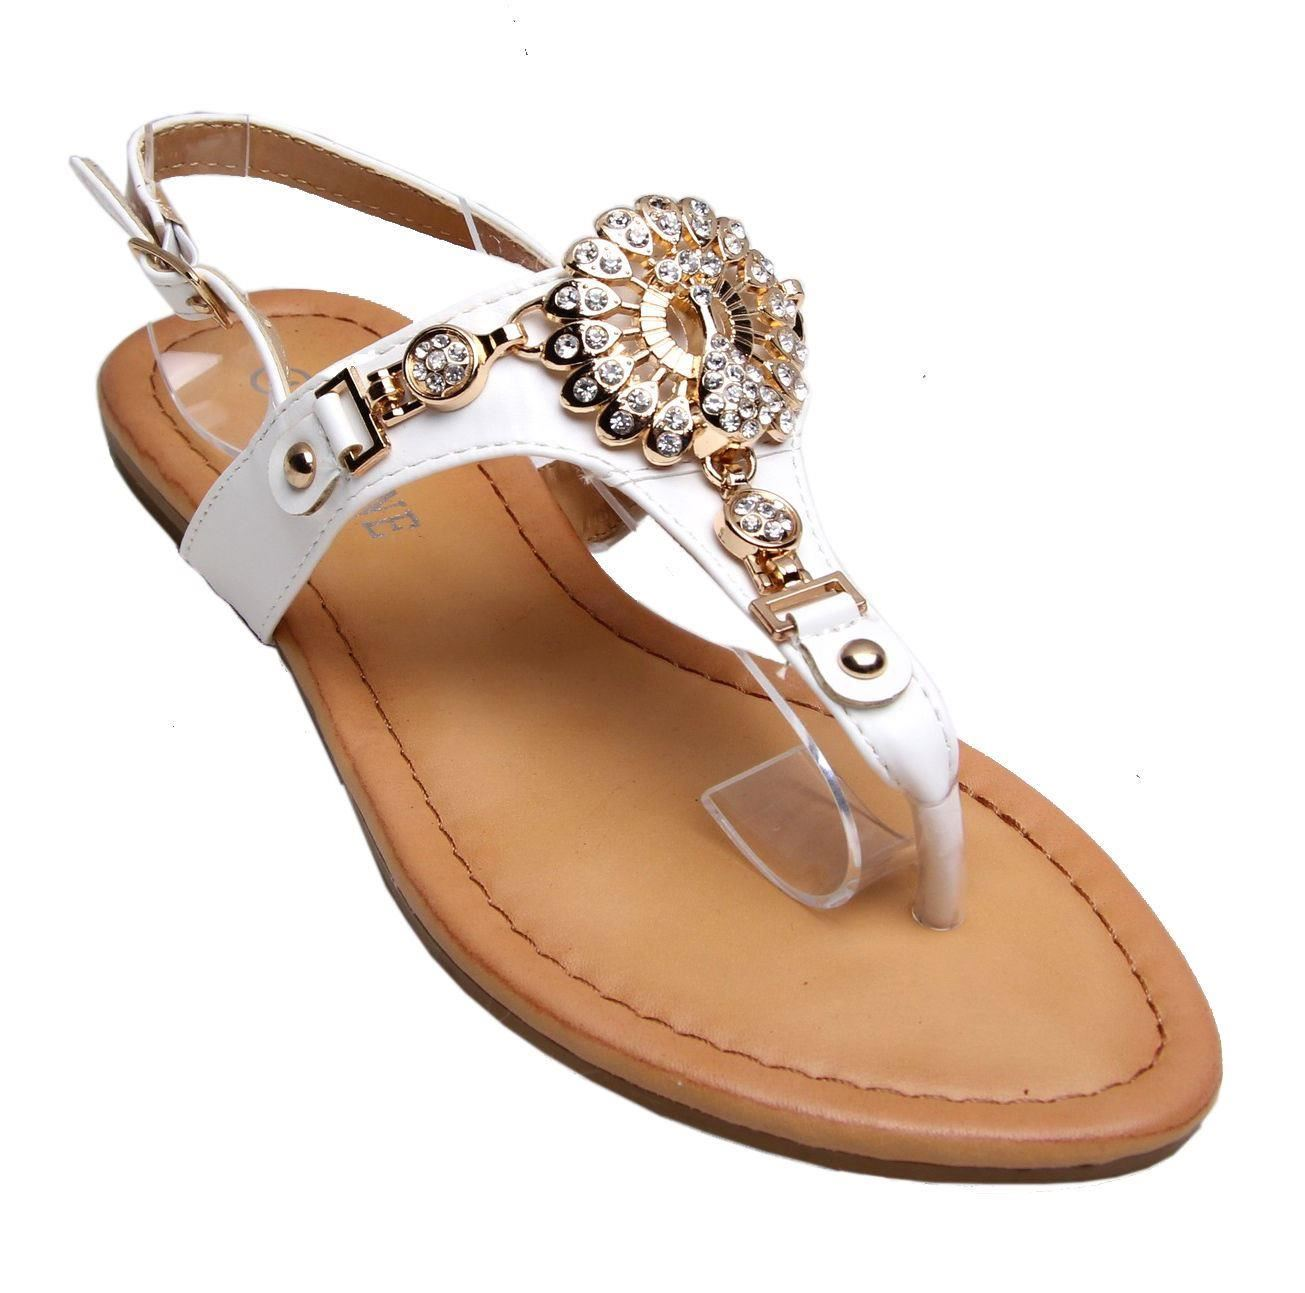 Book Of Women Sandals With Straps In Uk By William